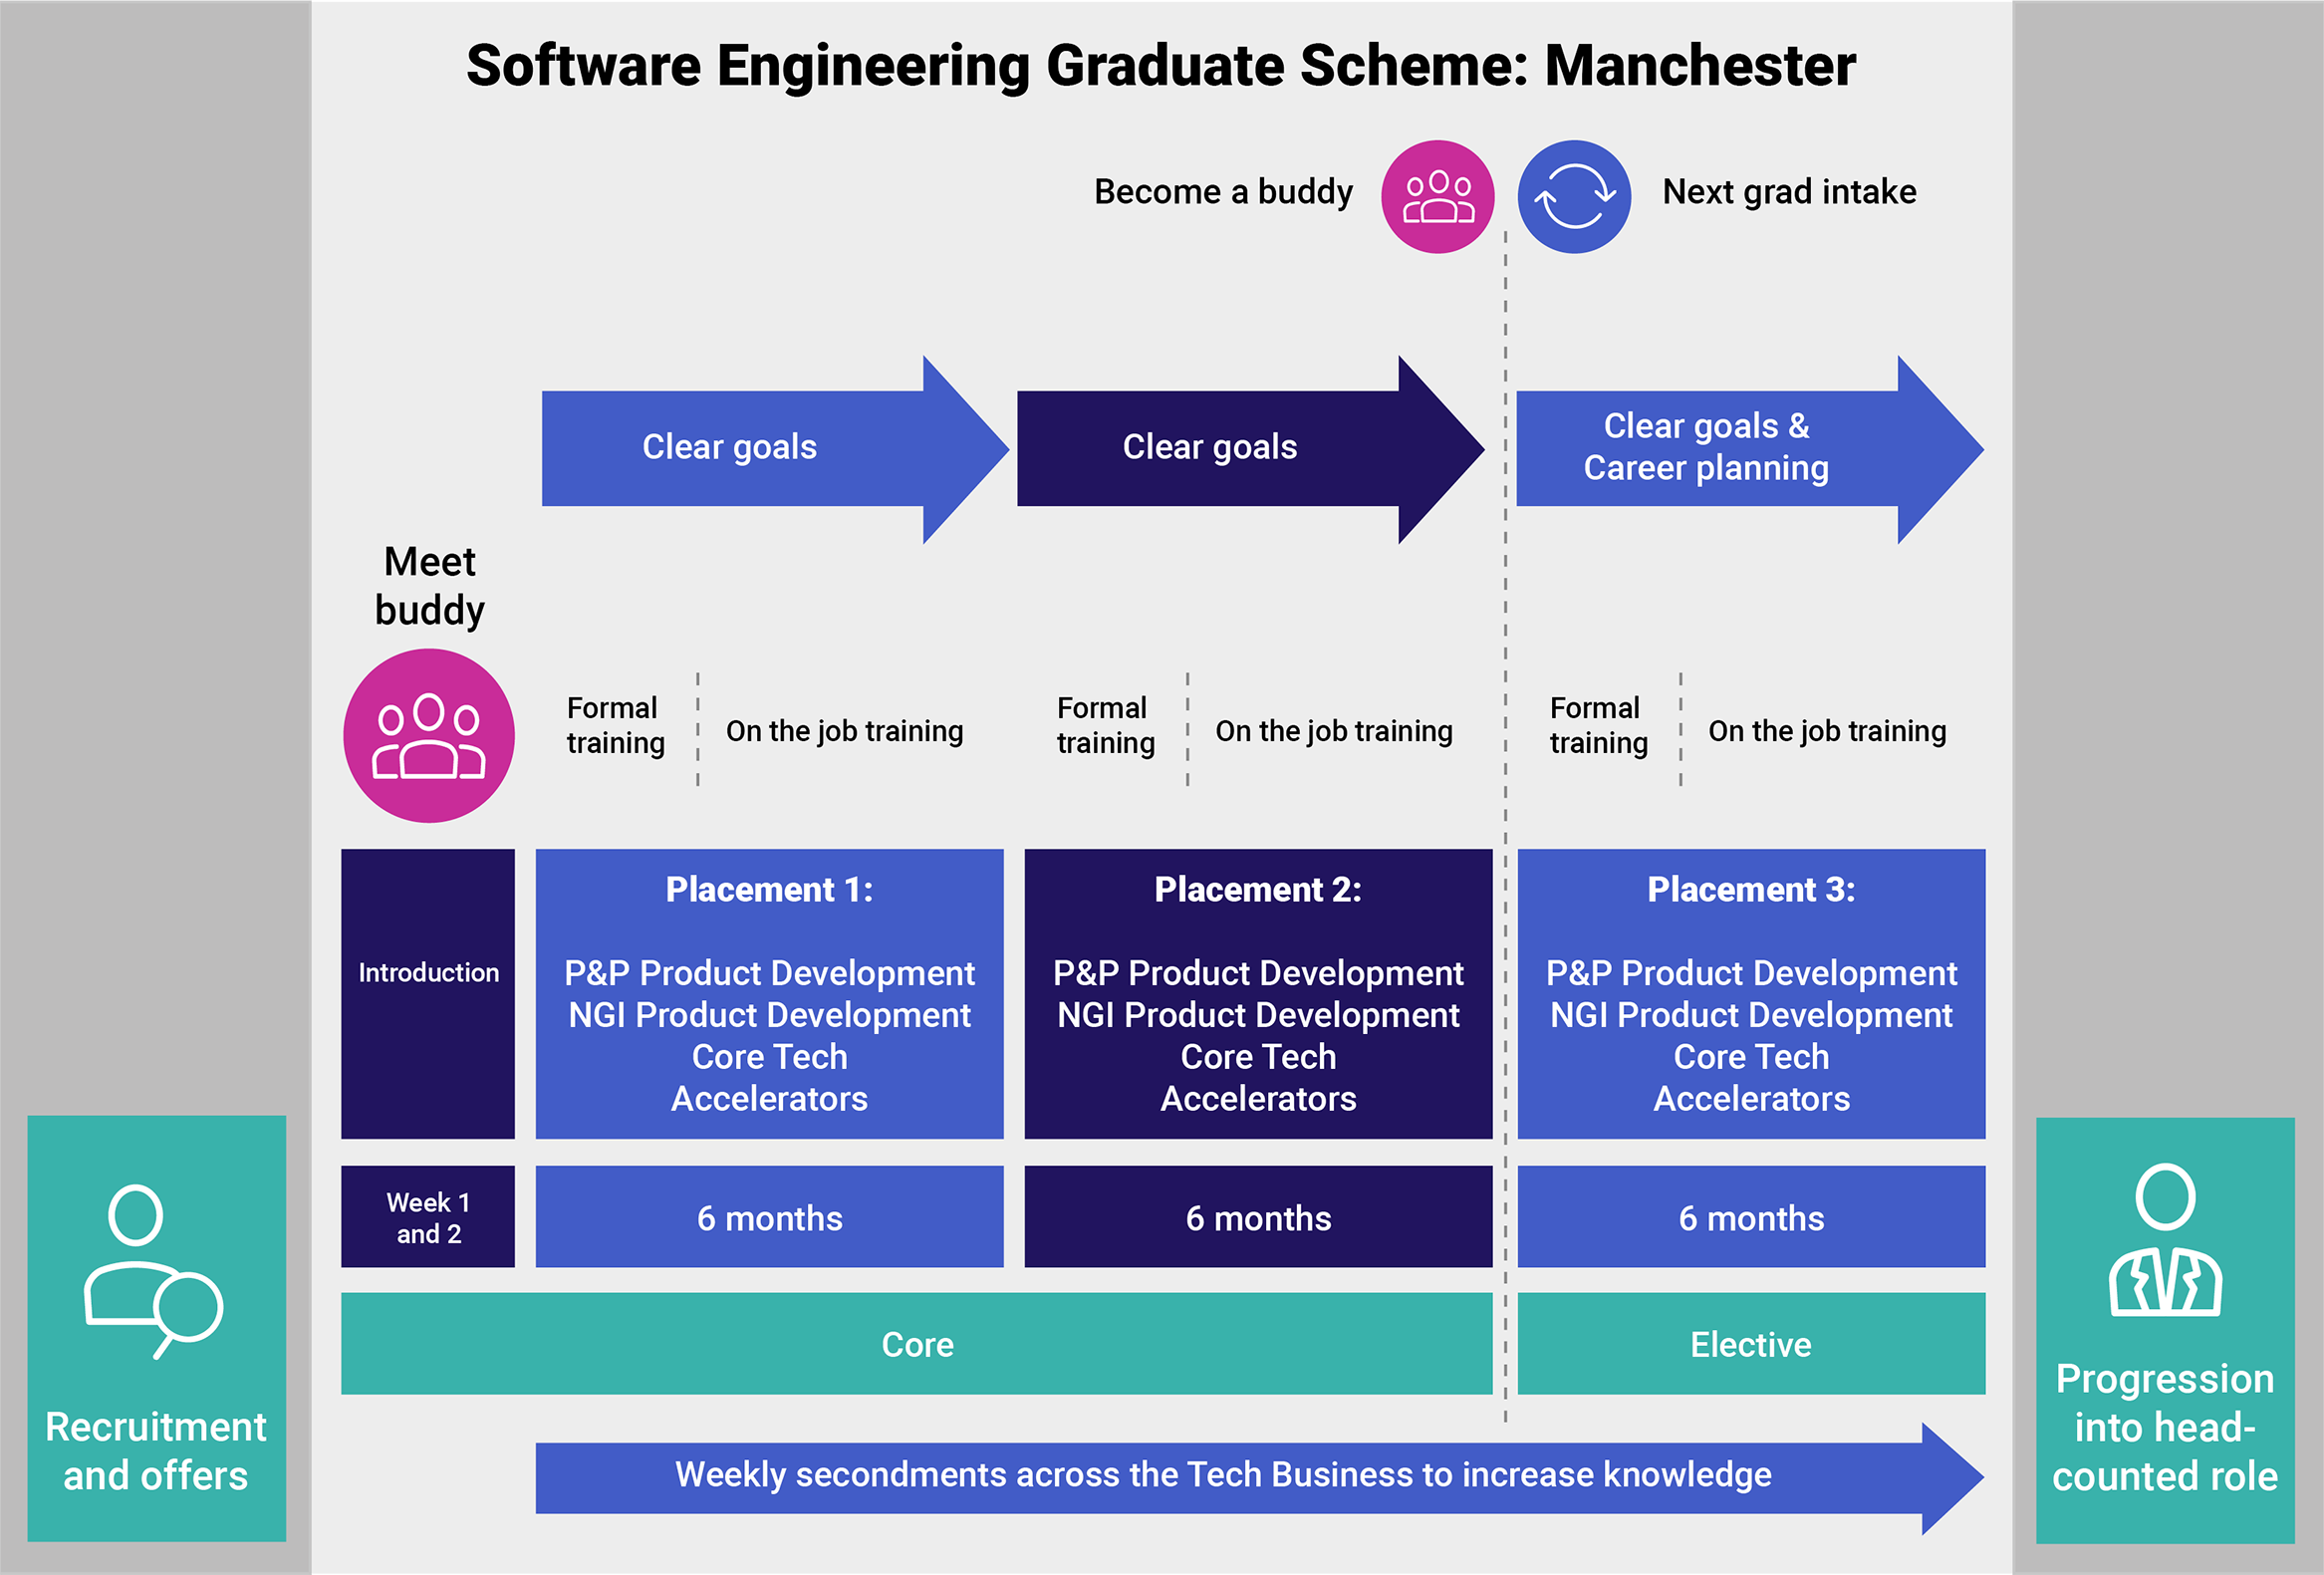 Software Engineering Graduate Scheme: Manchester